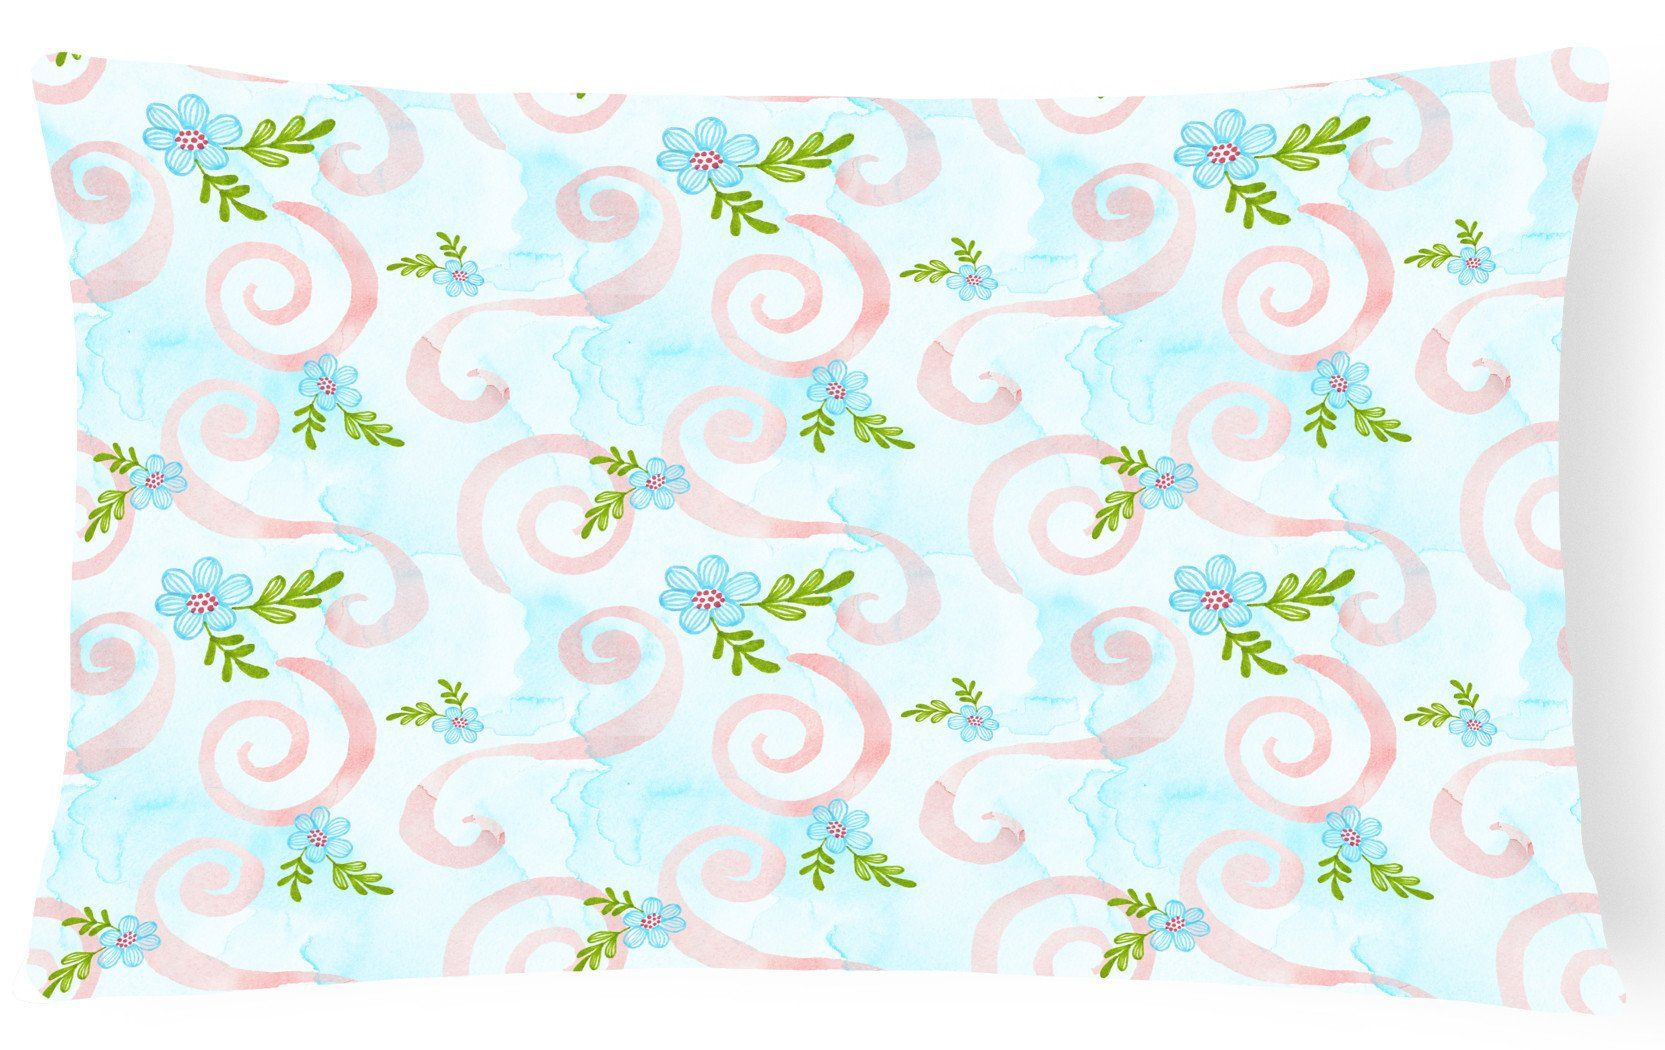 Watercolor blue flowers and swirls canvas fabric decorative pillow